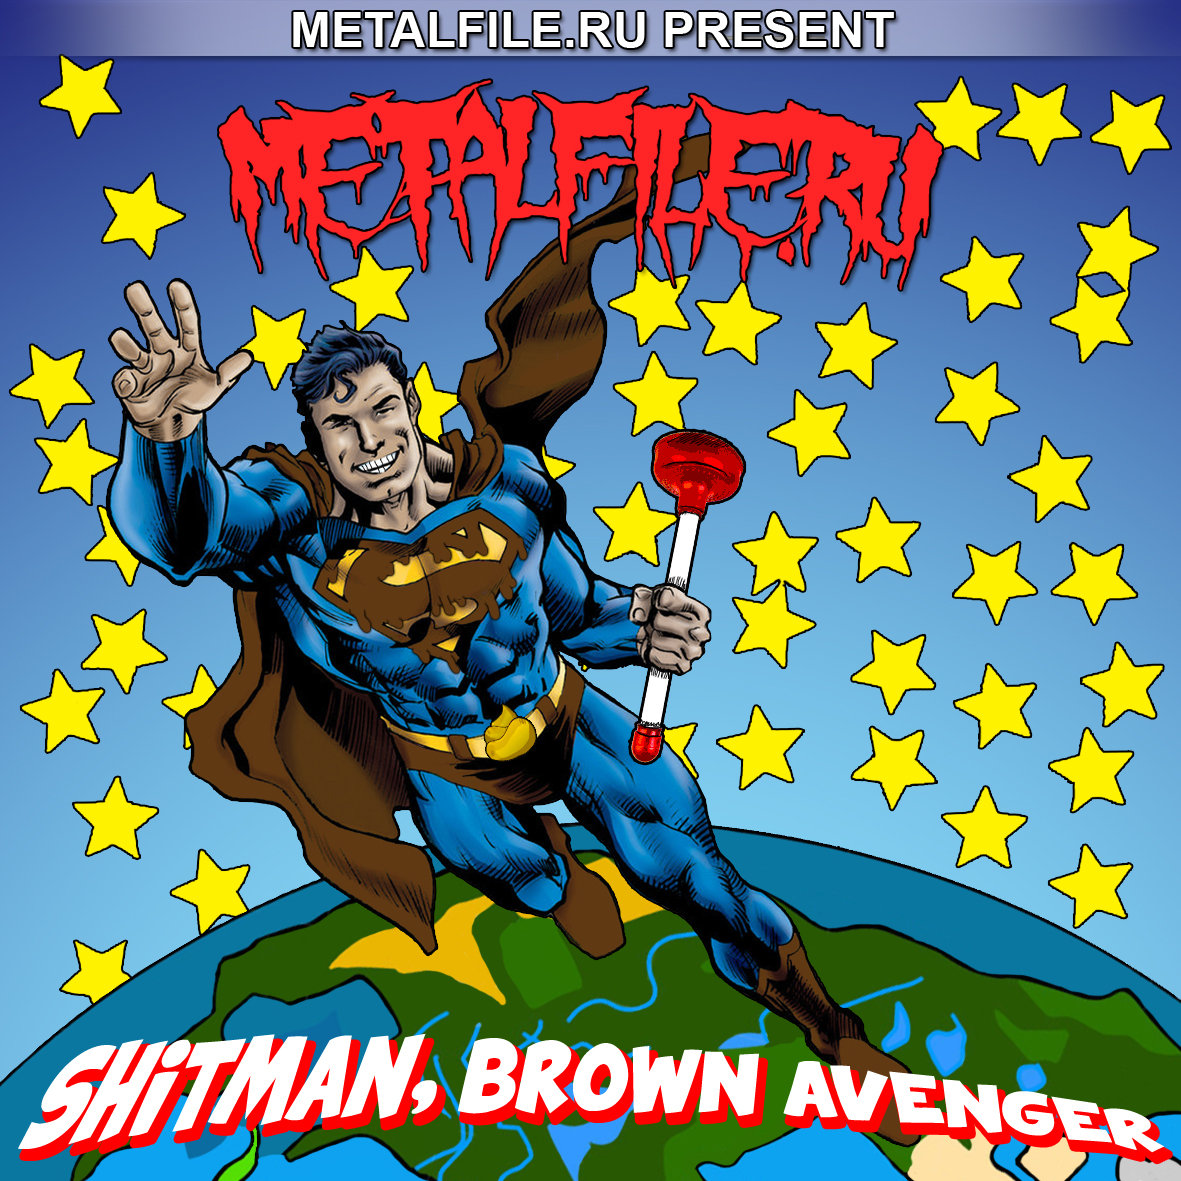 From Shitman Brown Avenger By Metalfile Ru V A